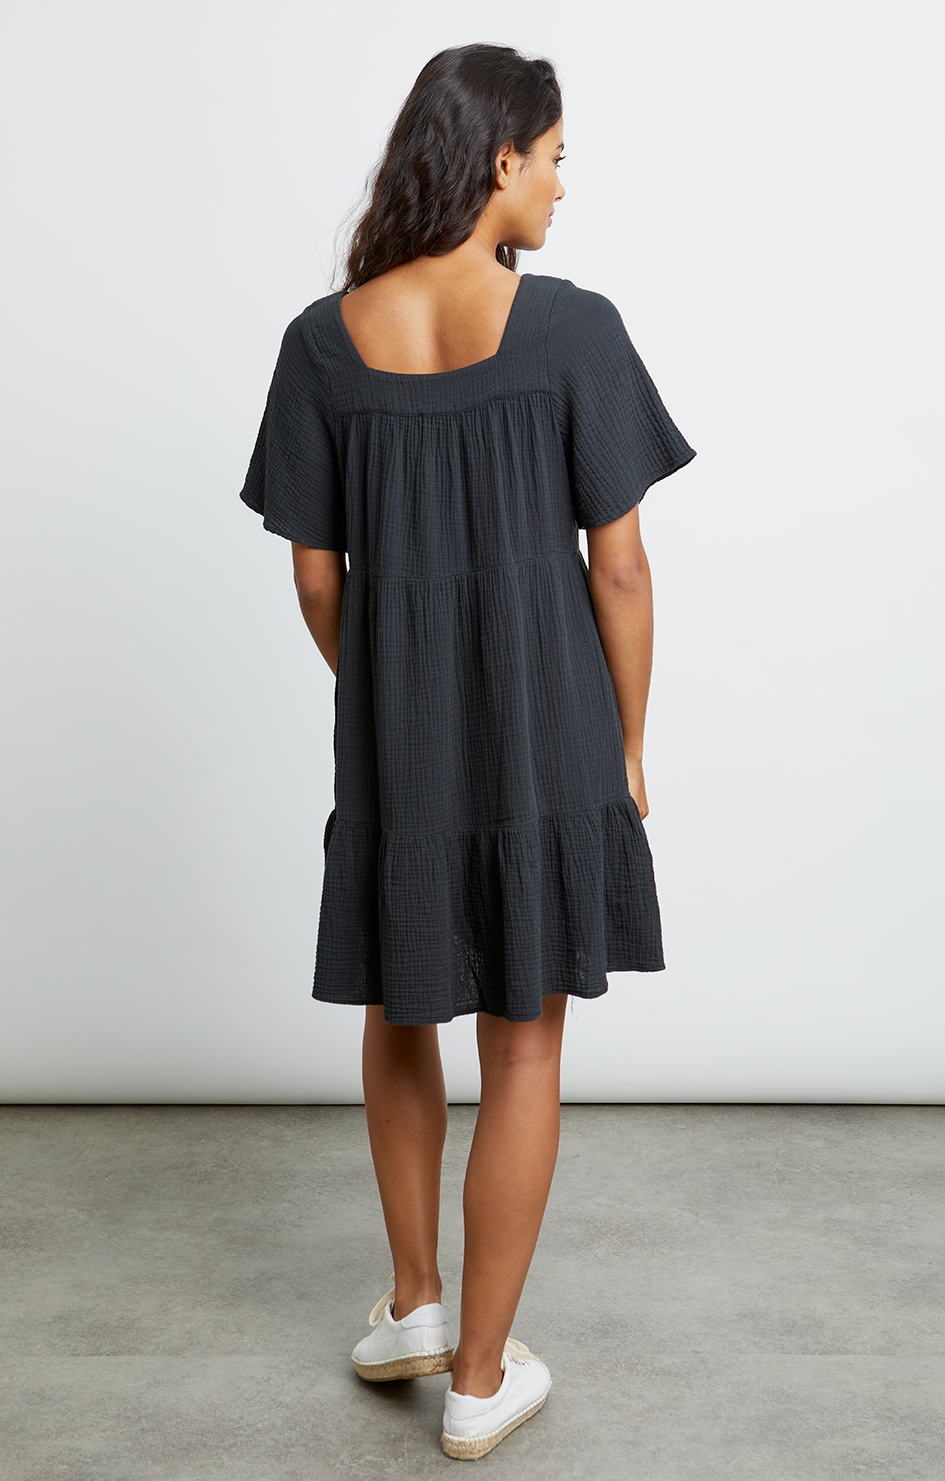 Valentina Dress - Black